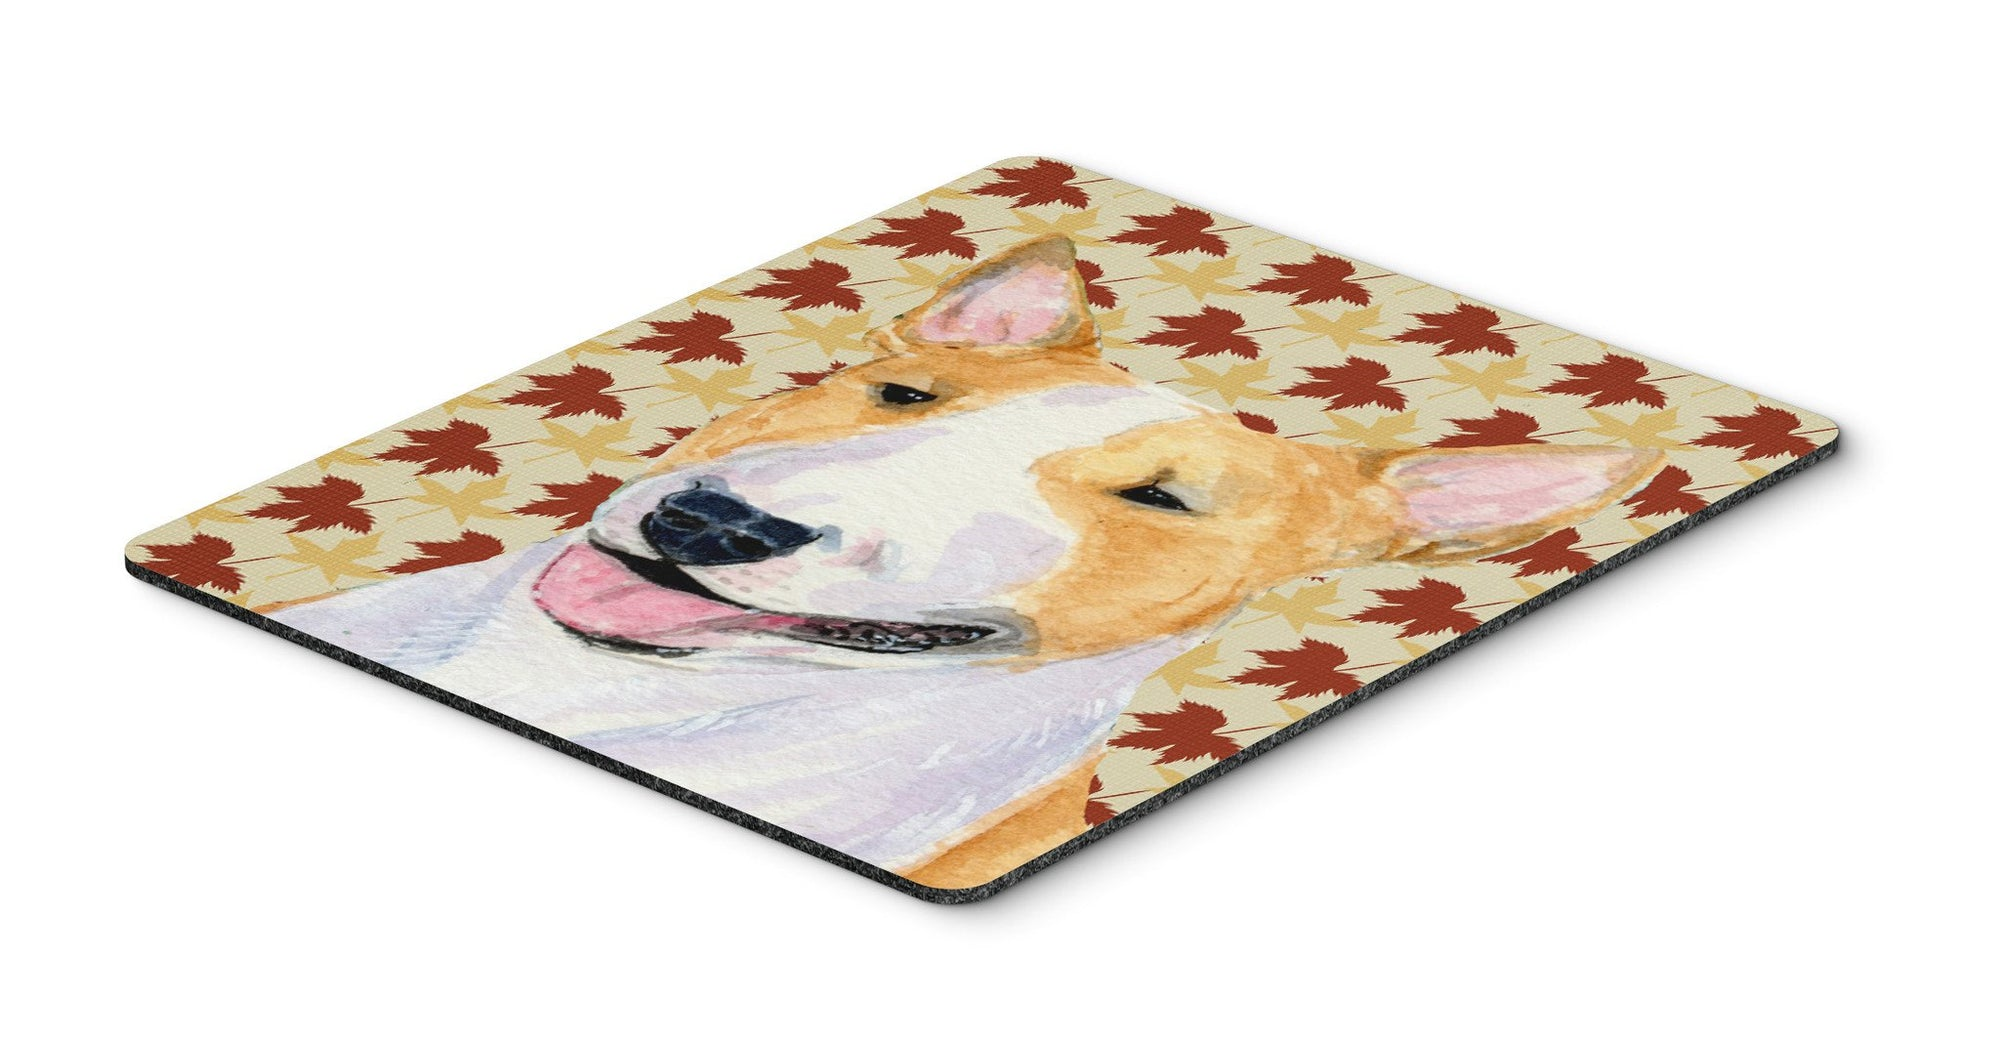 Bull Terrier Fall Leaves Portrait Mouse Pad, Hot Pad or Trivet by Caroline's Treasures